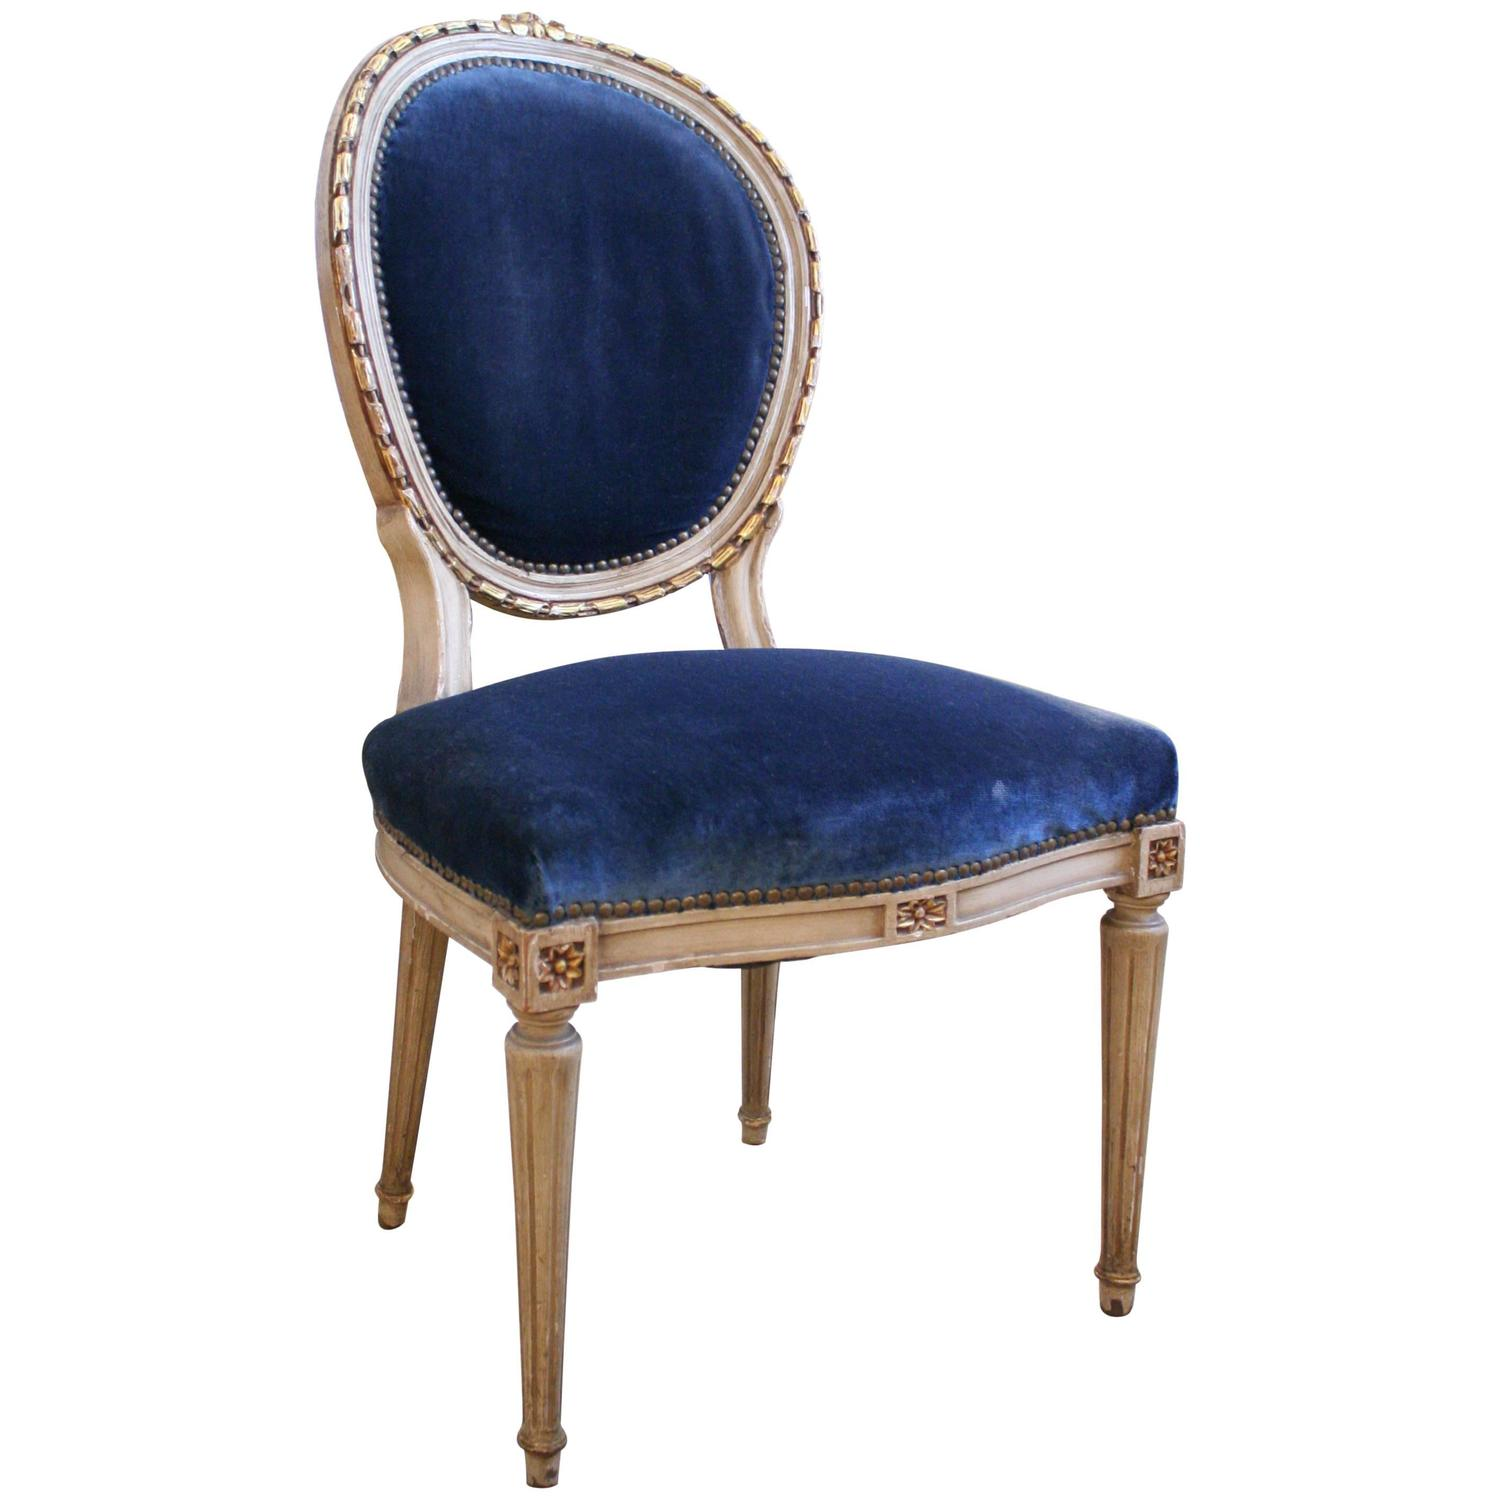 19th Century French Side Chair with Oval Back at 1stdibs